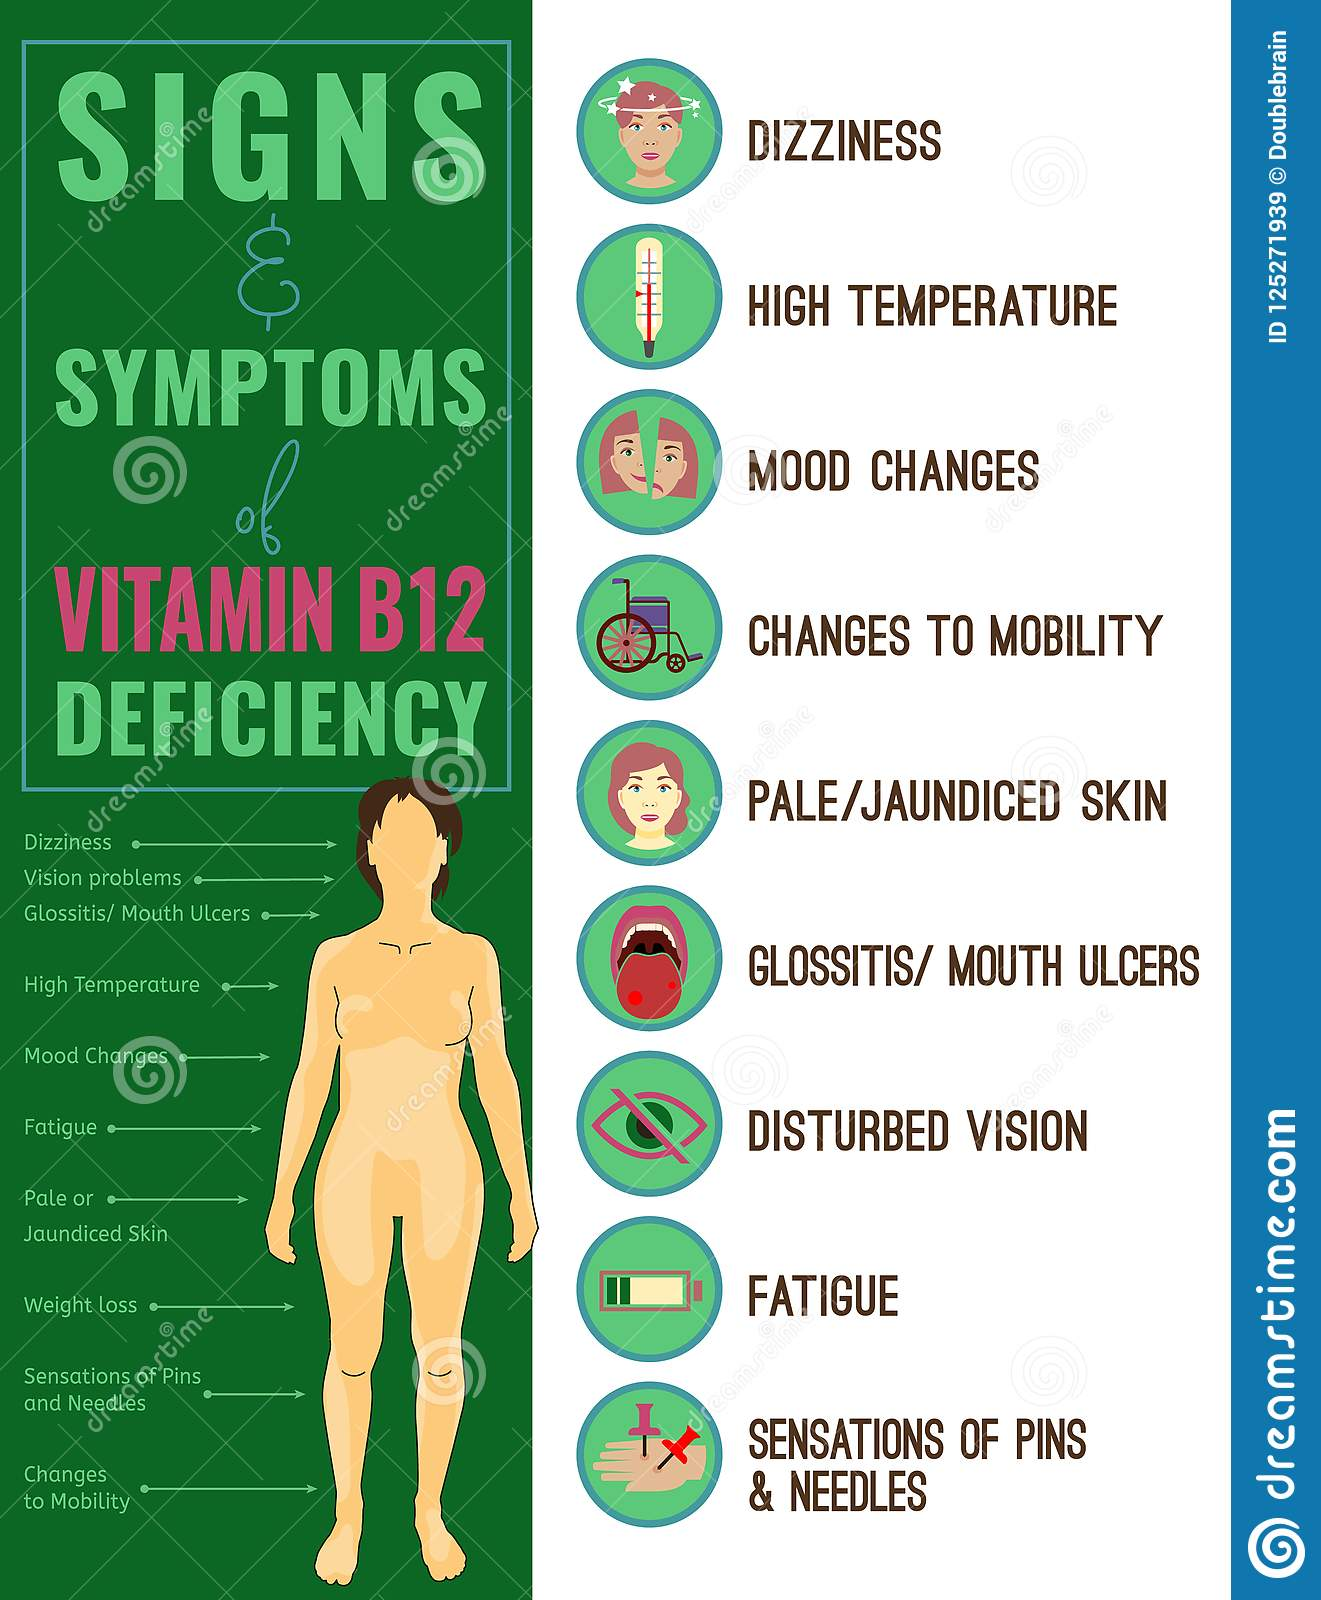 Prevent Memory Loss: Health Benefits Of Vitamin B12 For Seniors With Alzheimer's